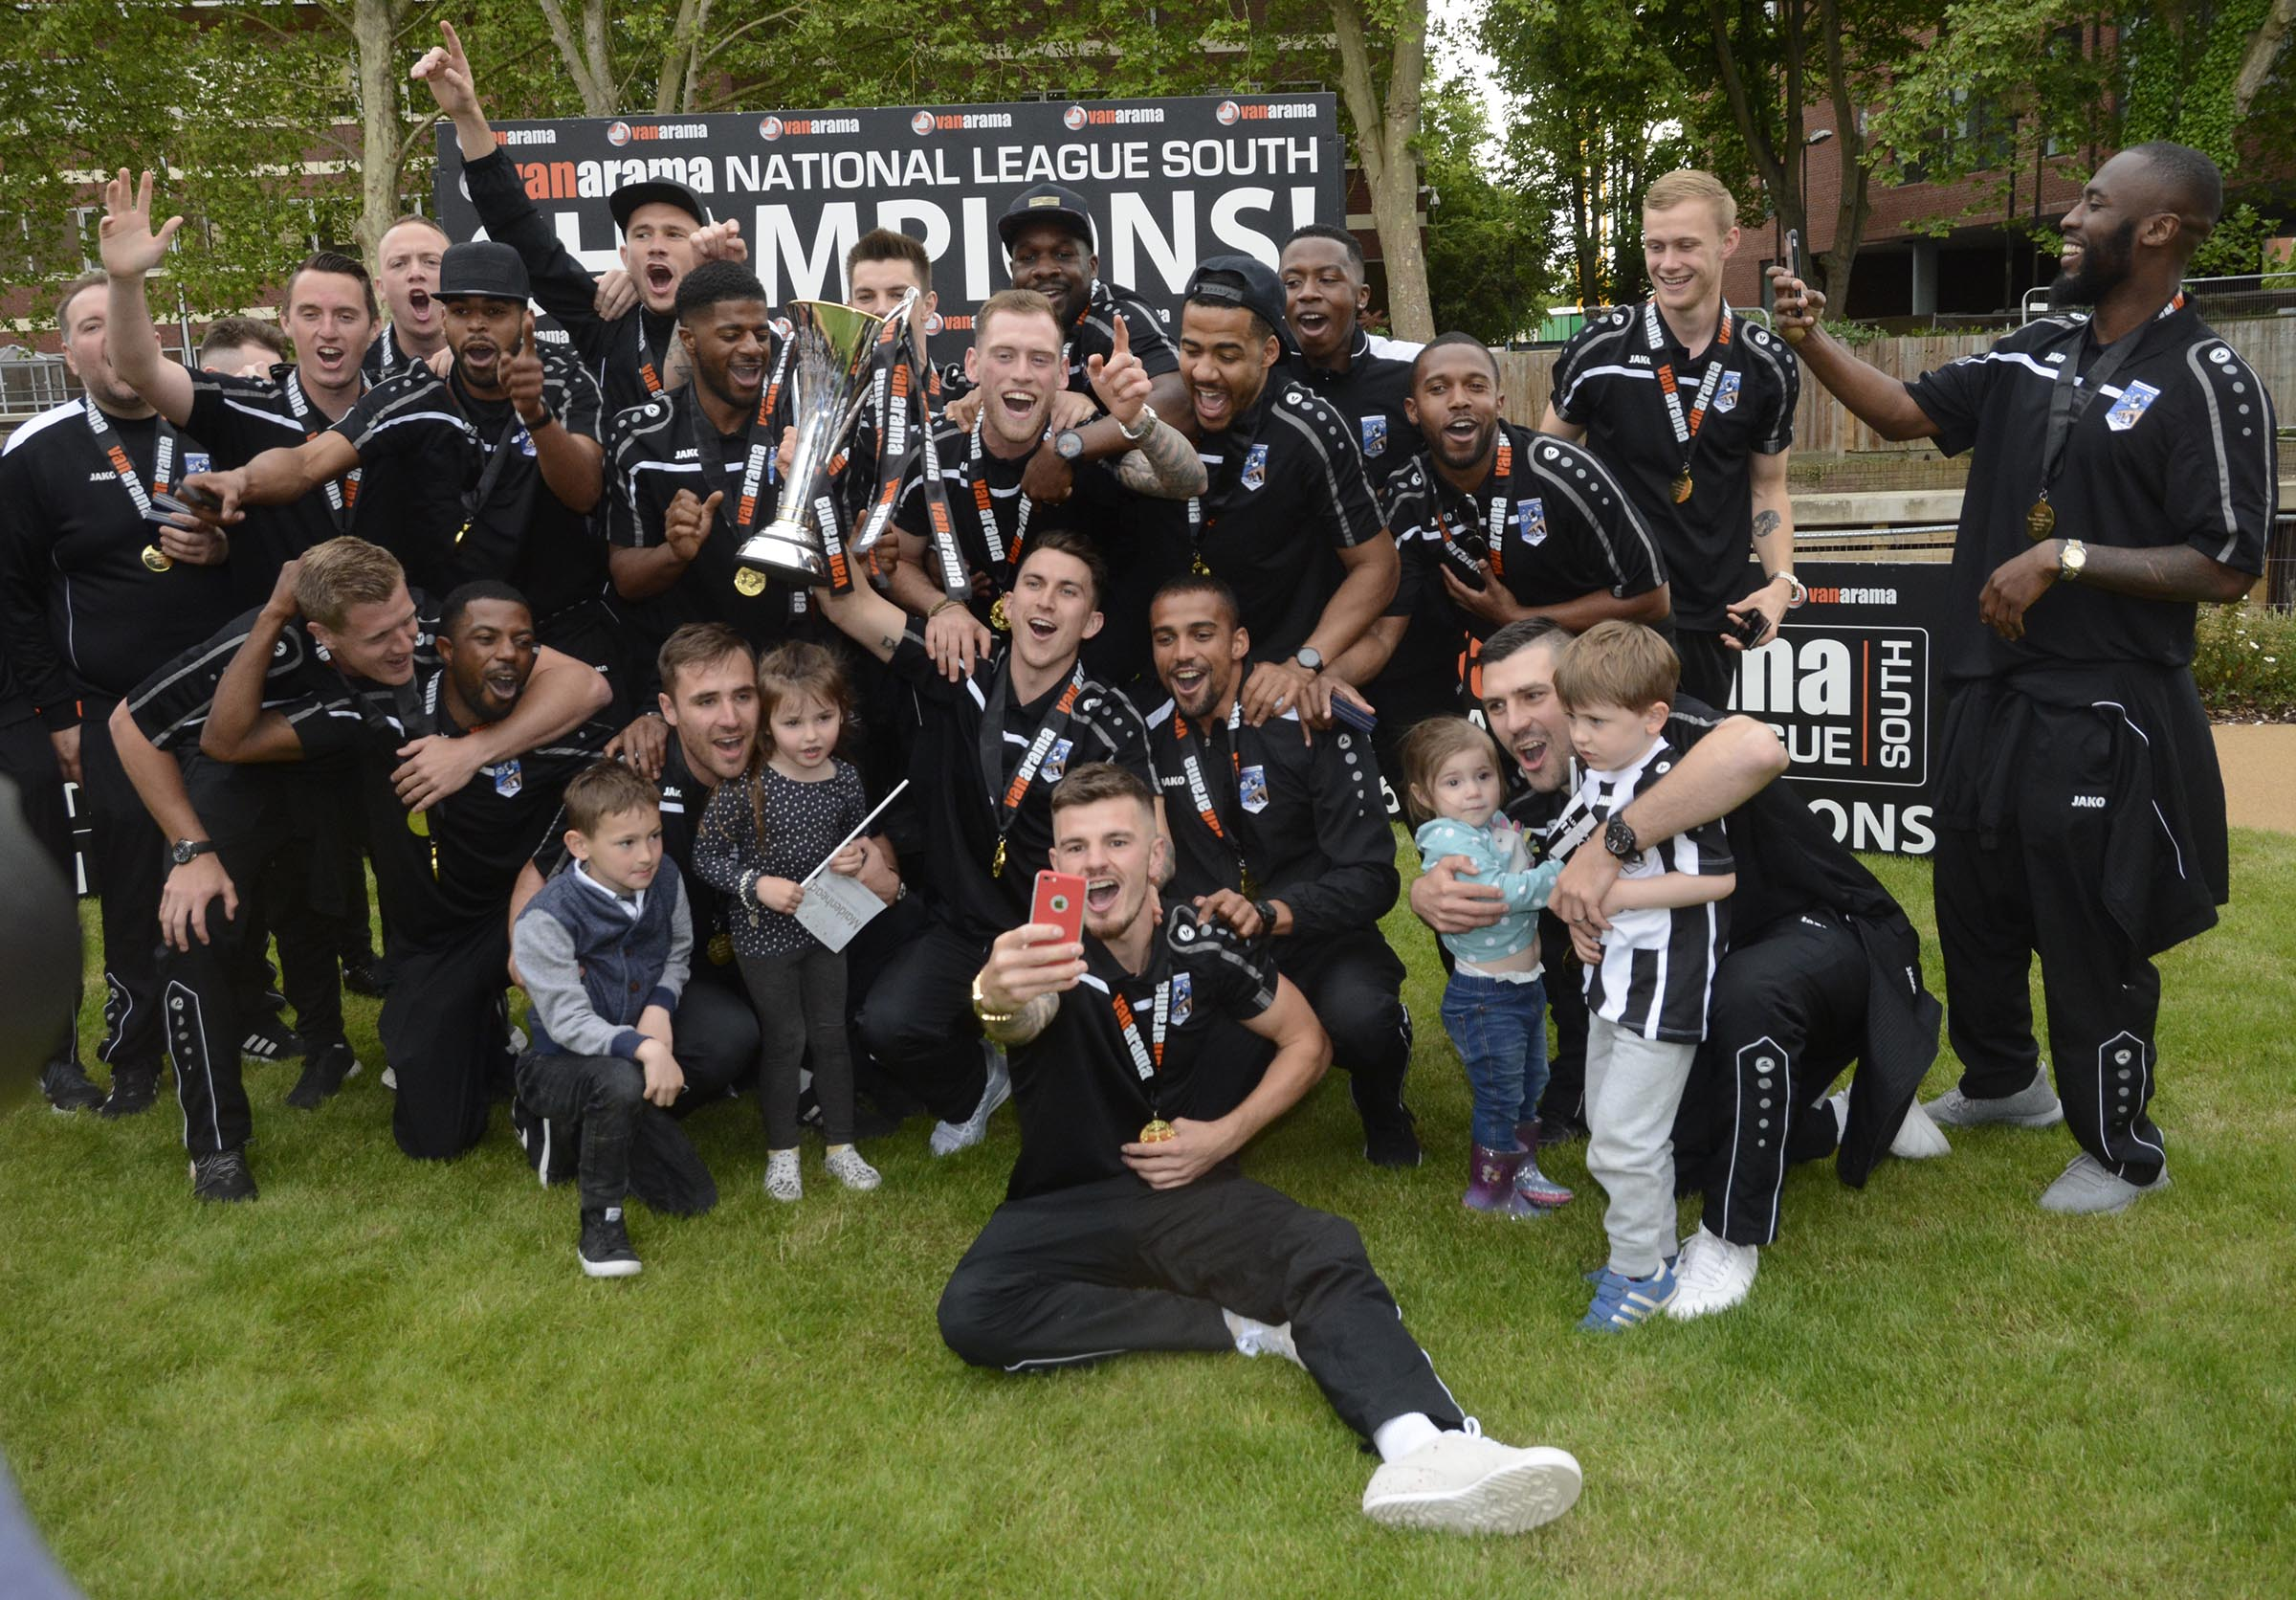 Maidenhead United celebrate with the National League South title on Saturday.